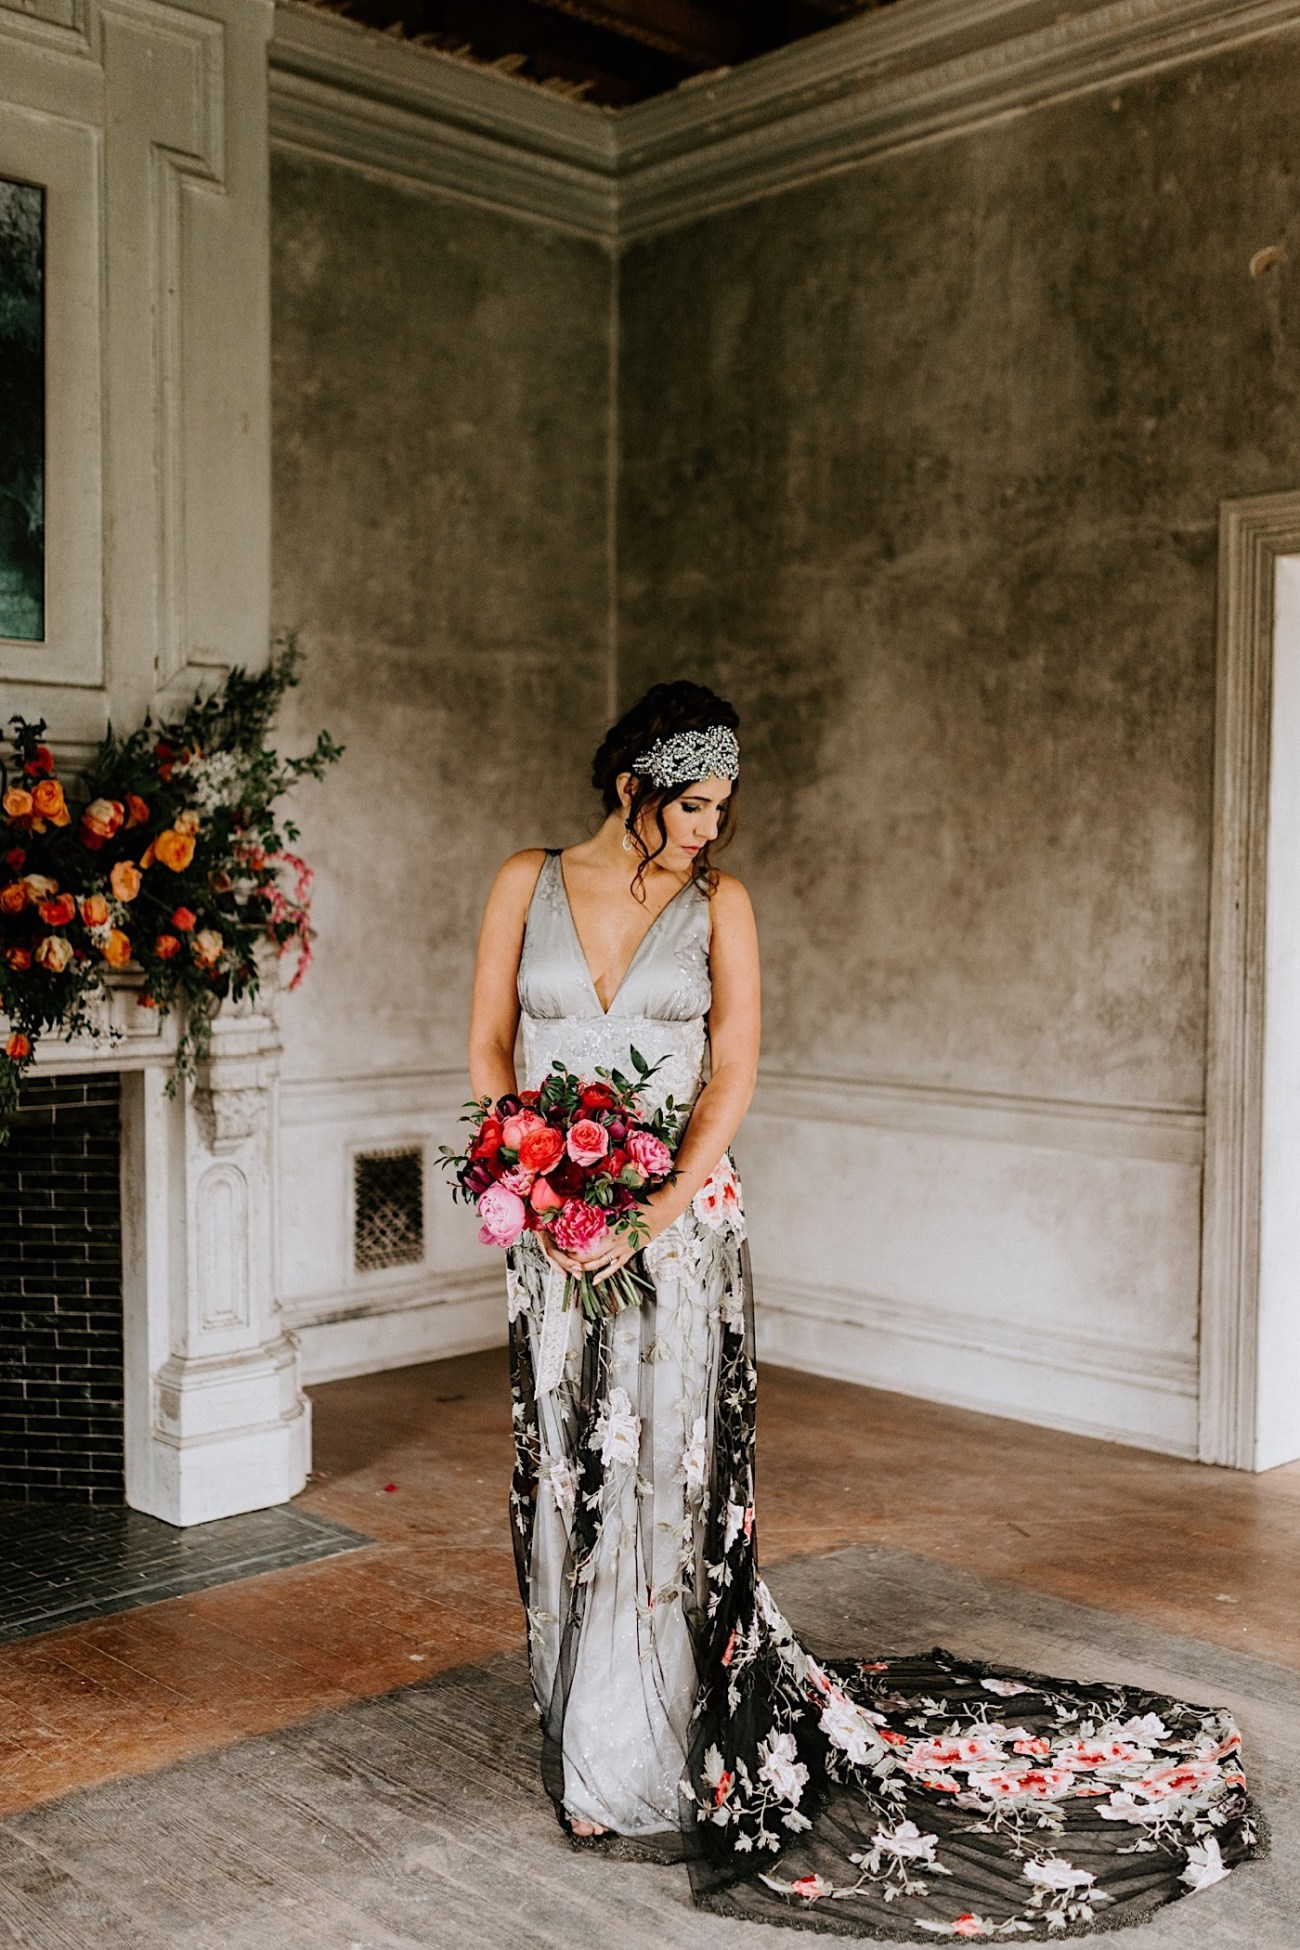 Claire Pettibone Wedding dress. Ravena Wedding gown by Claire Pettibone. Black wedding dress inspiration. Philadelphia Wedding Photographer, Philadelphia Wedding Venue, Barnsley Manor Wedding. Anais Possamai Photography